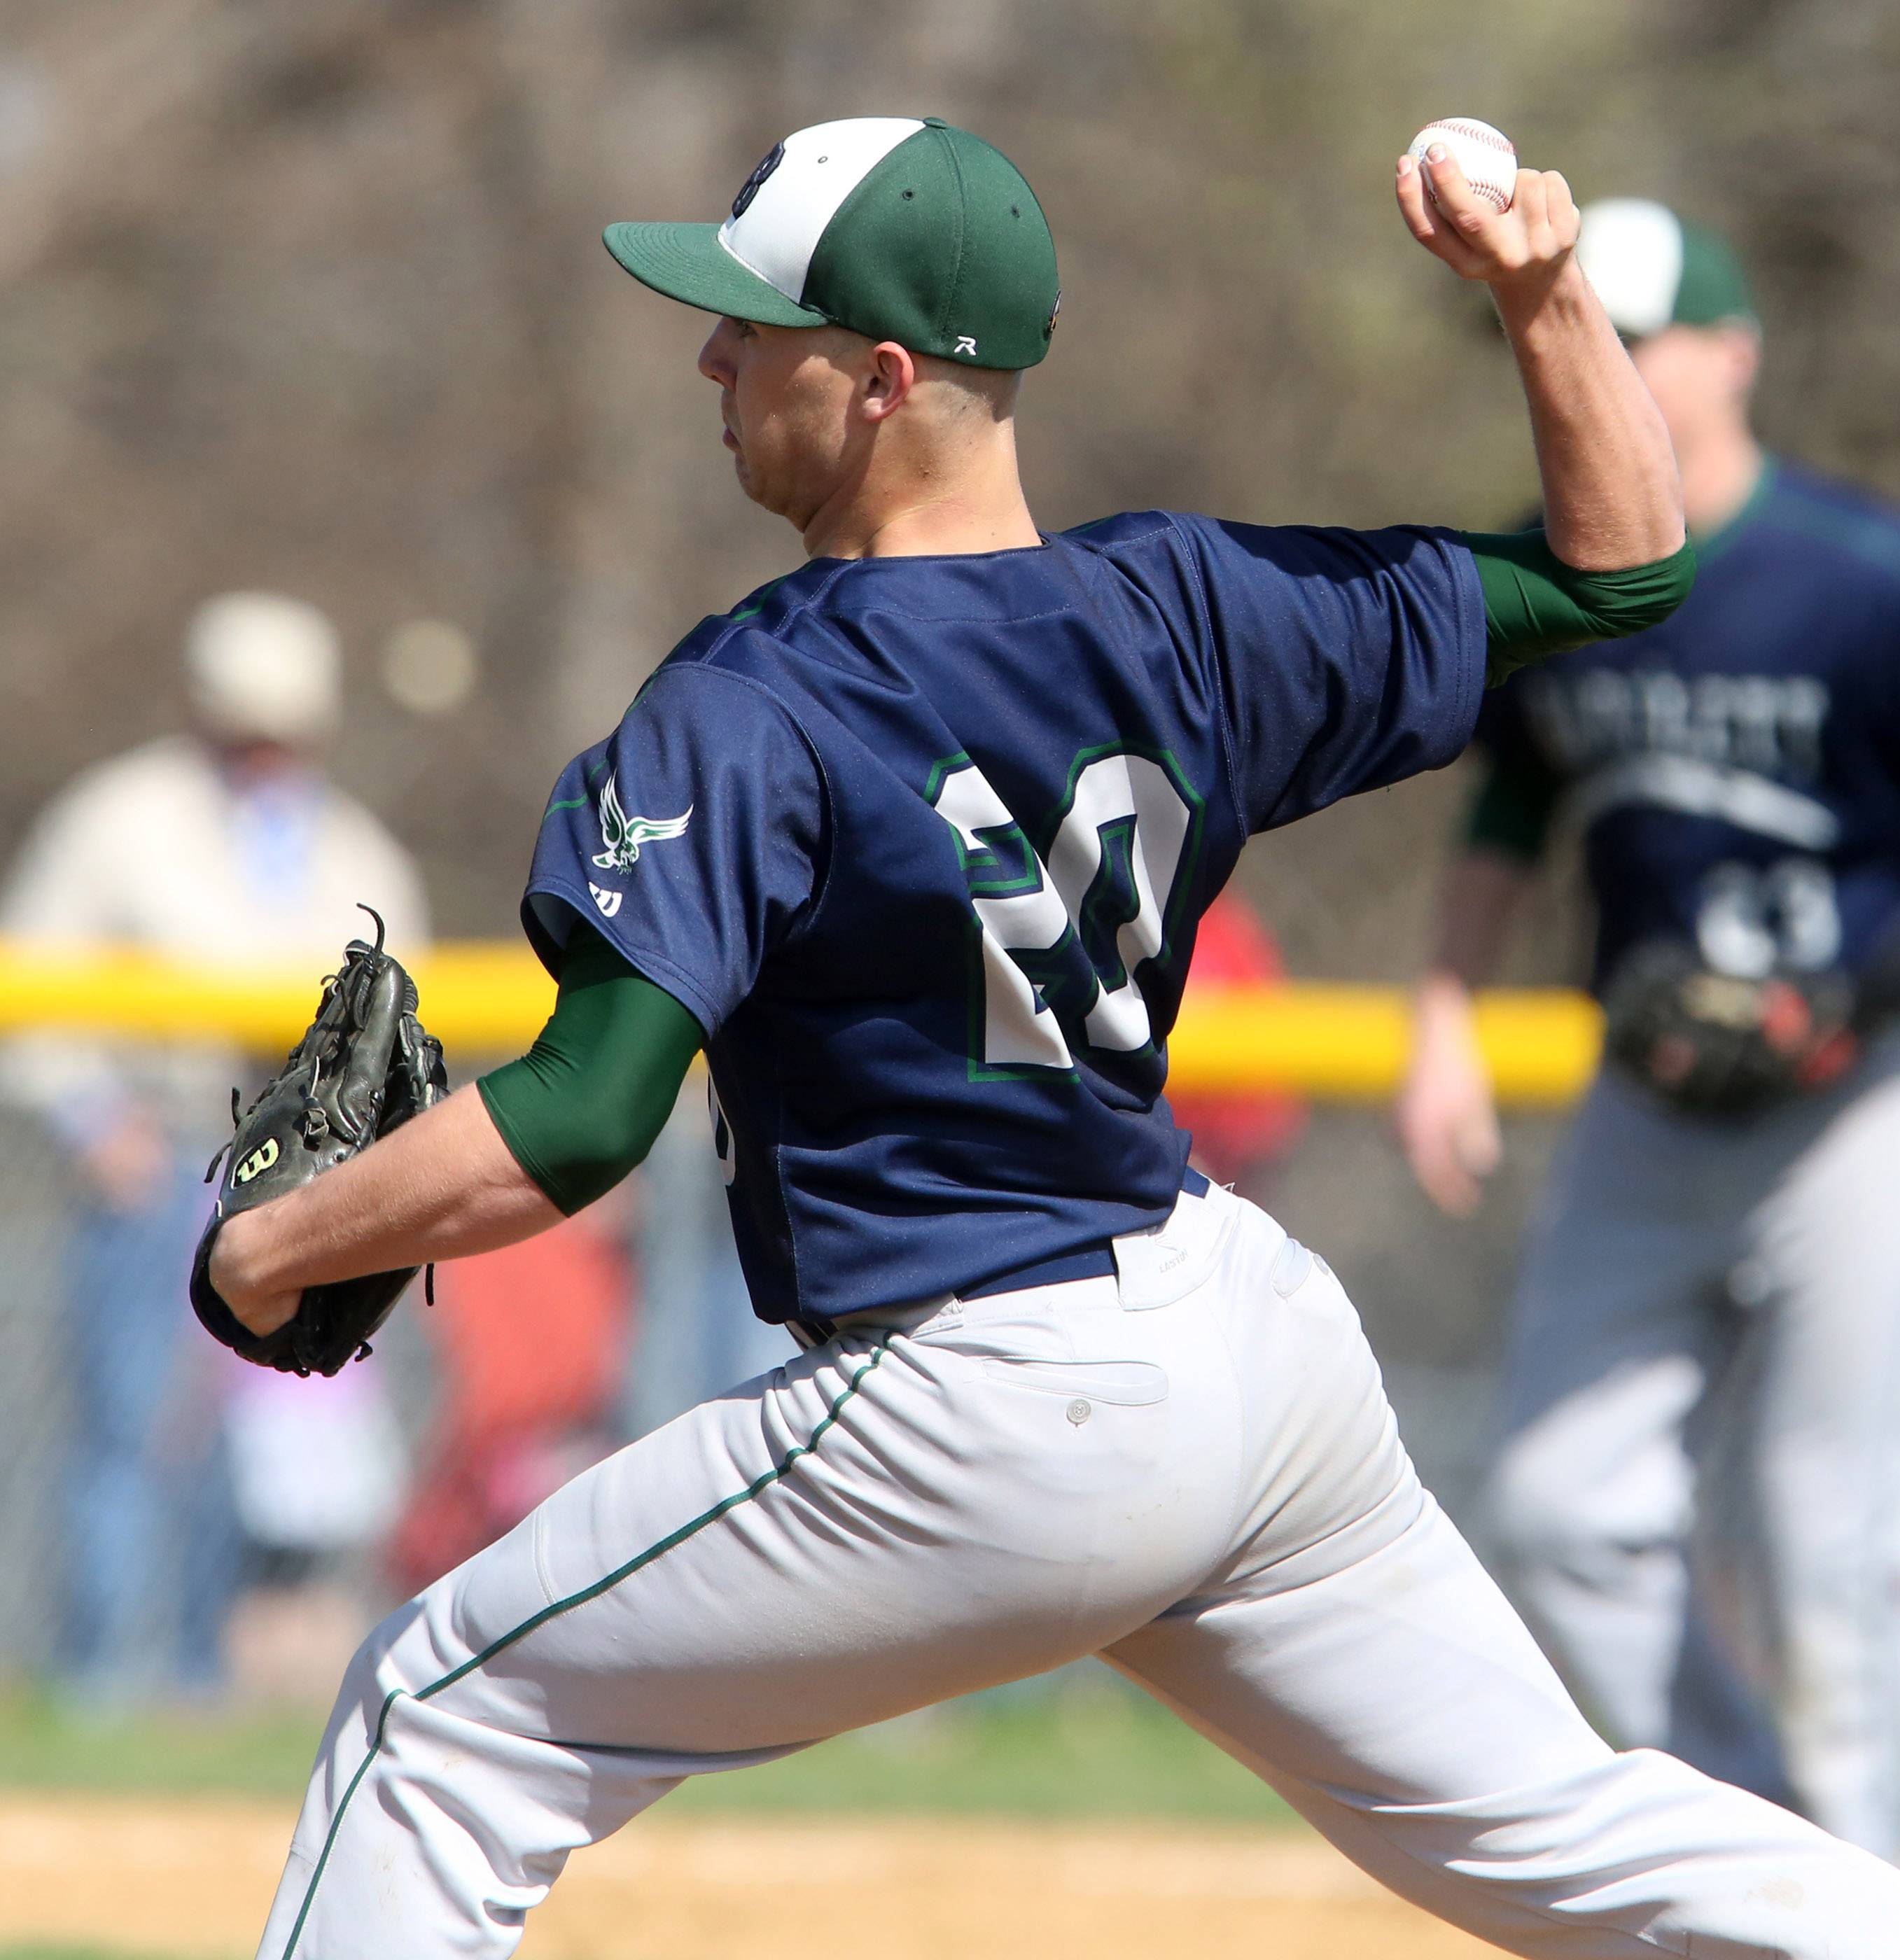 Bartlett pitcher Doug VanDyke facing South Elgin on Saturday at South Elgin.